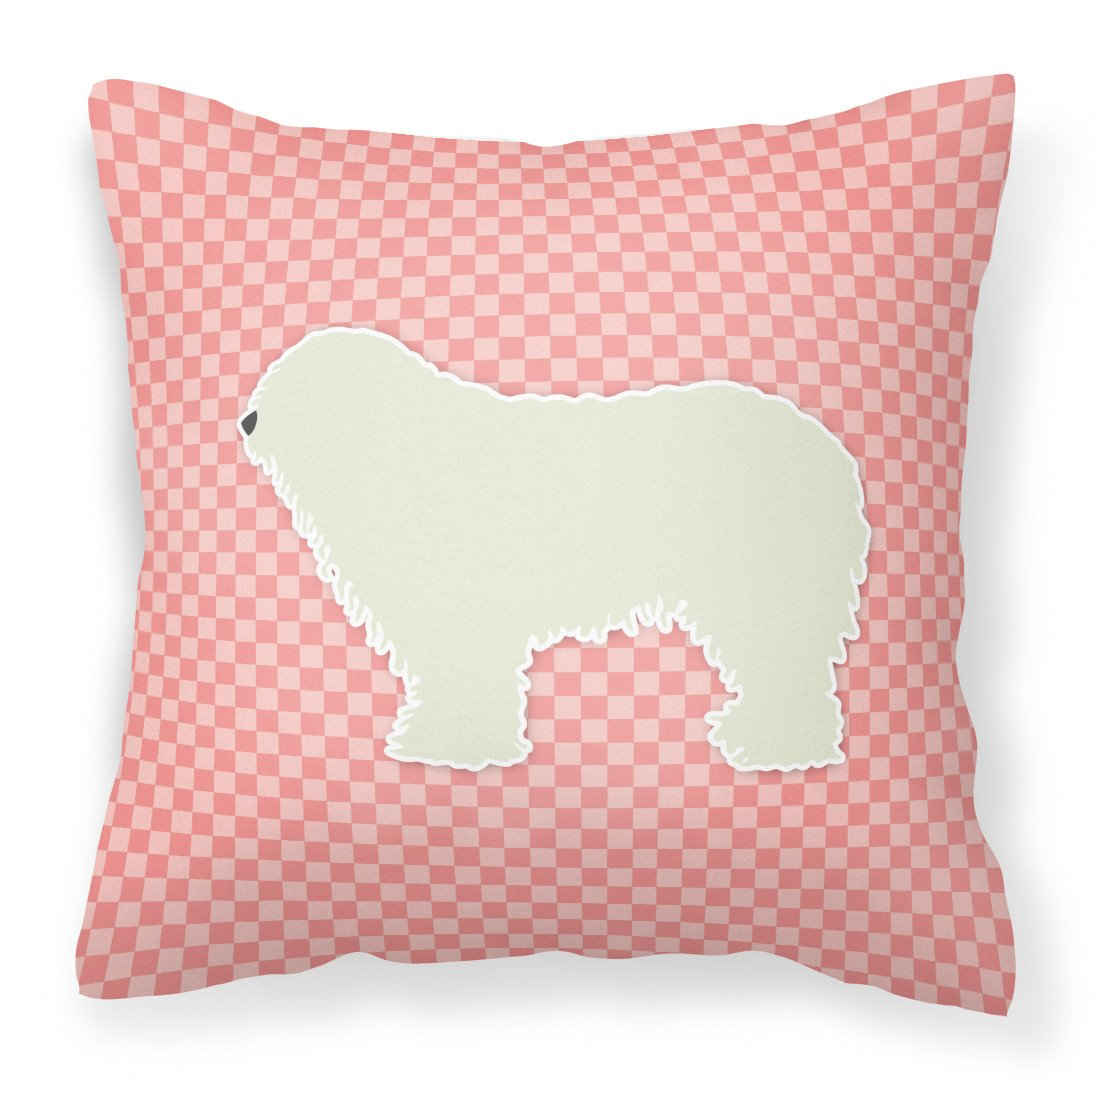 Komondor Checkerboard Pink Fabric Decorative Pillow BB3655PW1818 by Caroline's Treasures